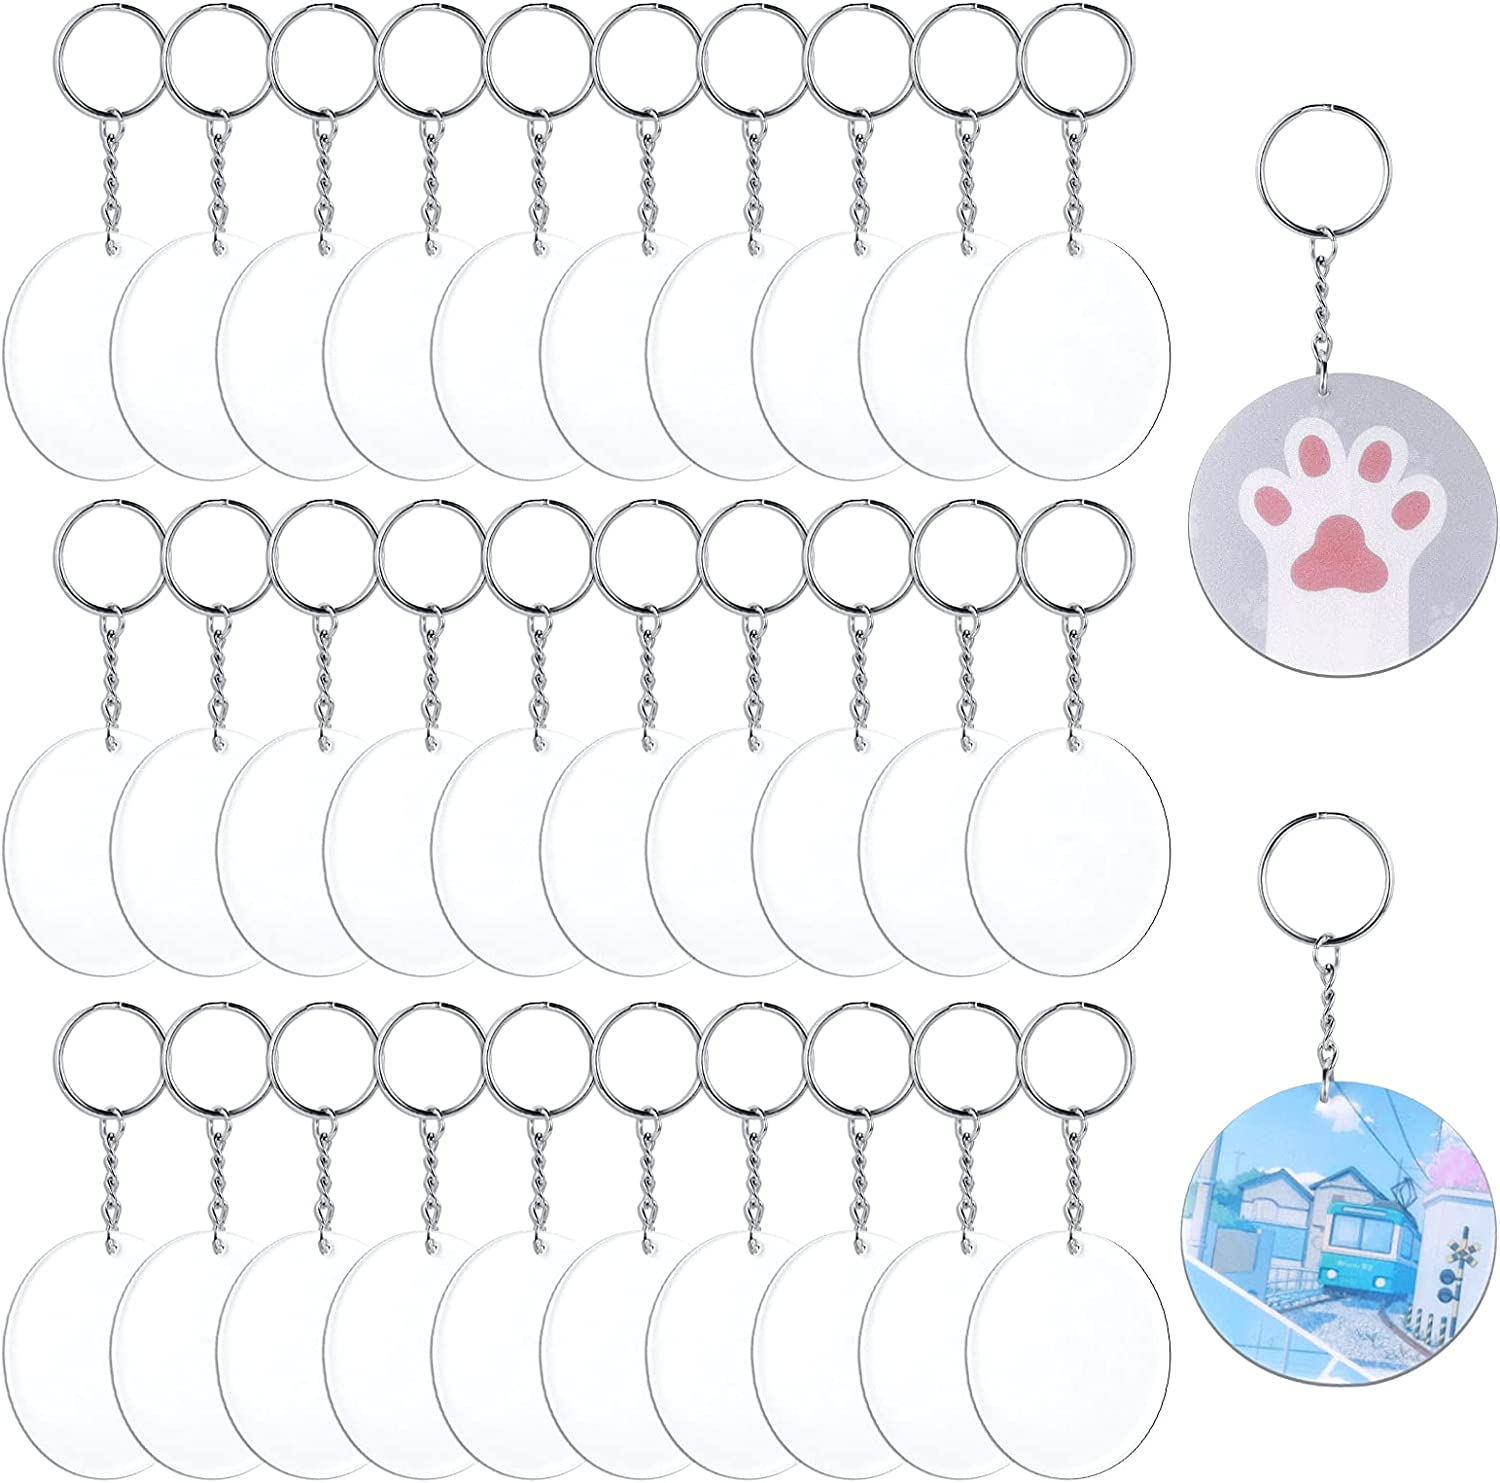 Acrylic Keychain Blanks GLIHRO 90 Denver Mall Clear Outstanding for Keychains Pcs Vinyl